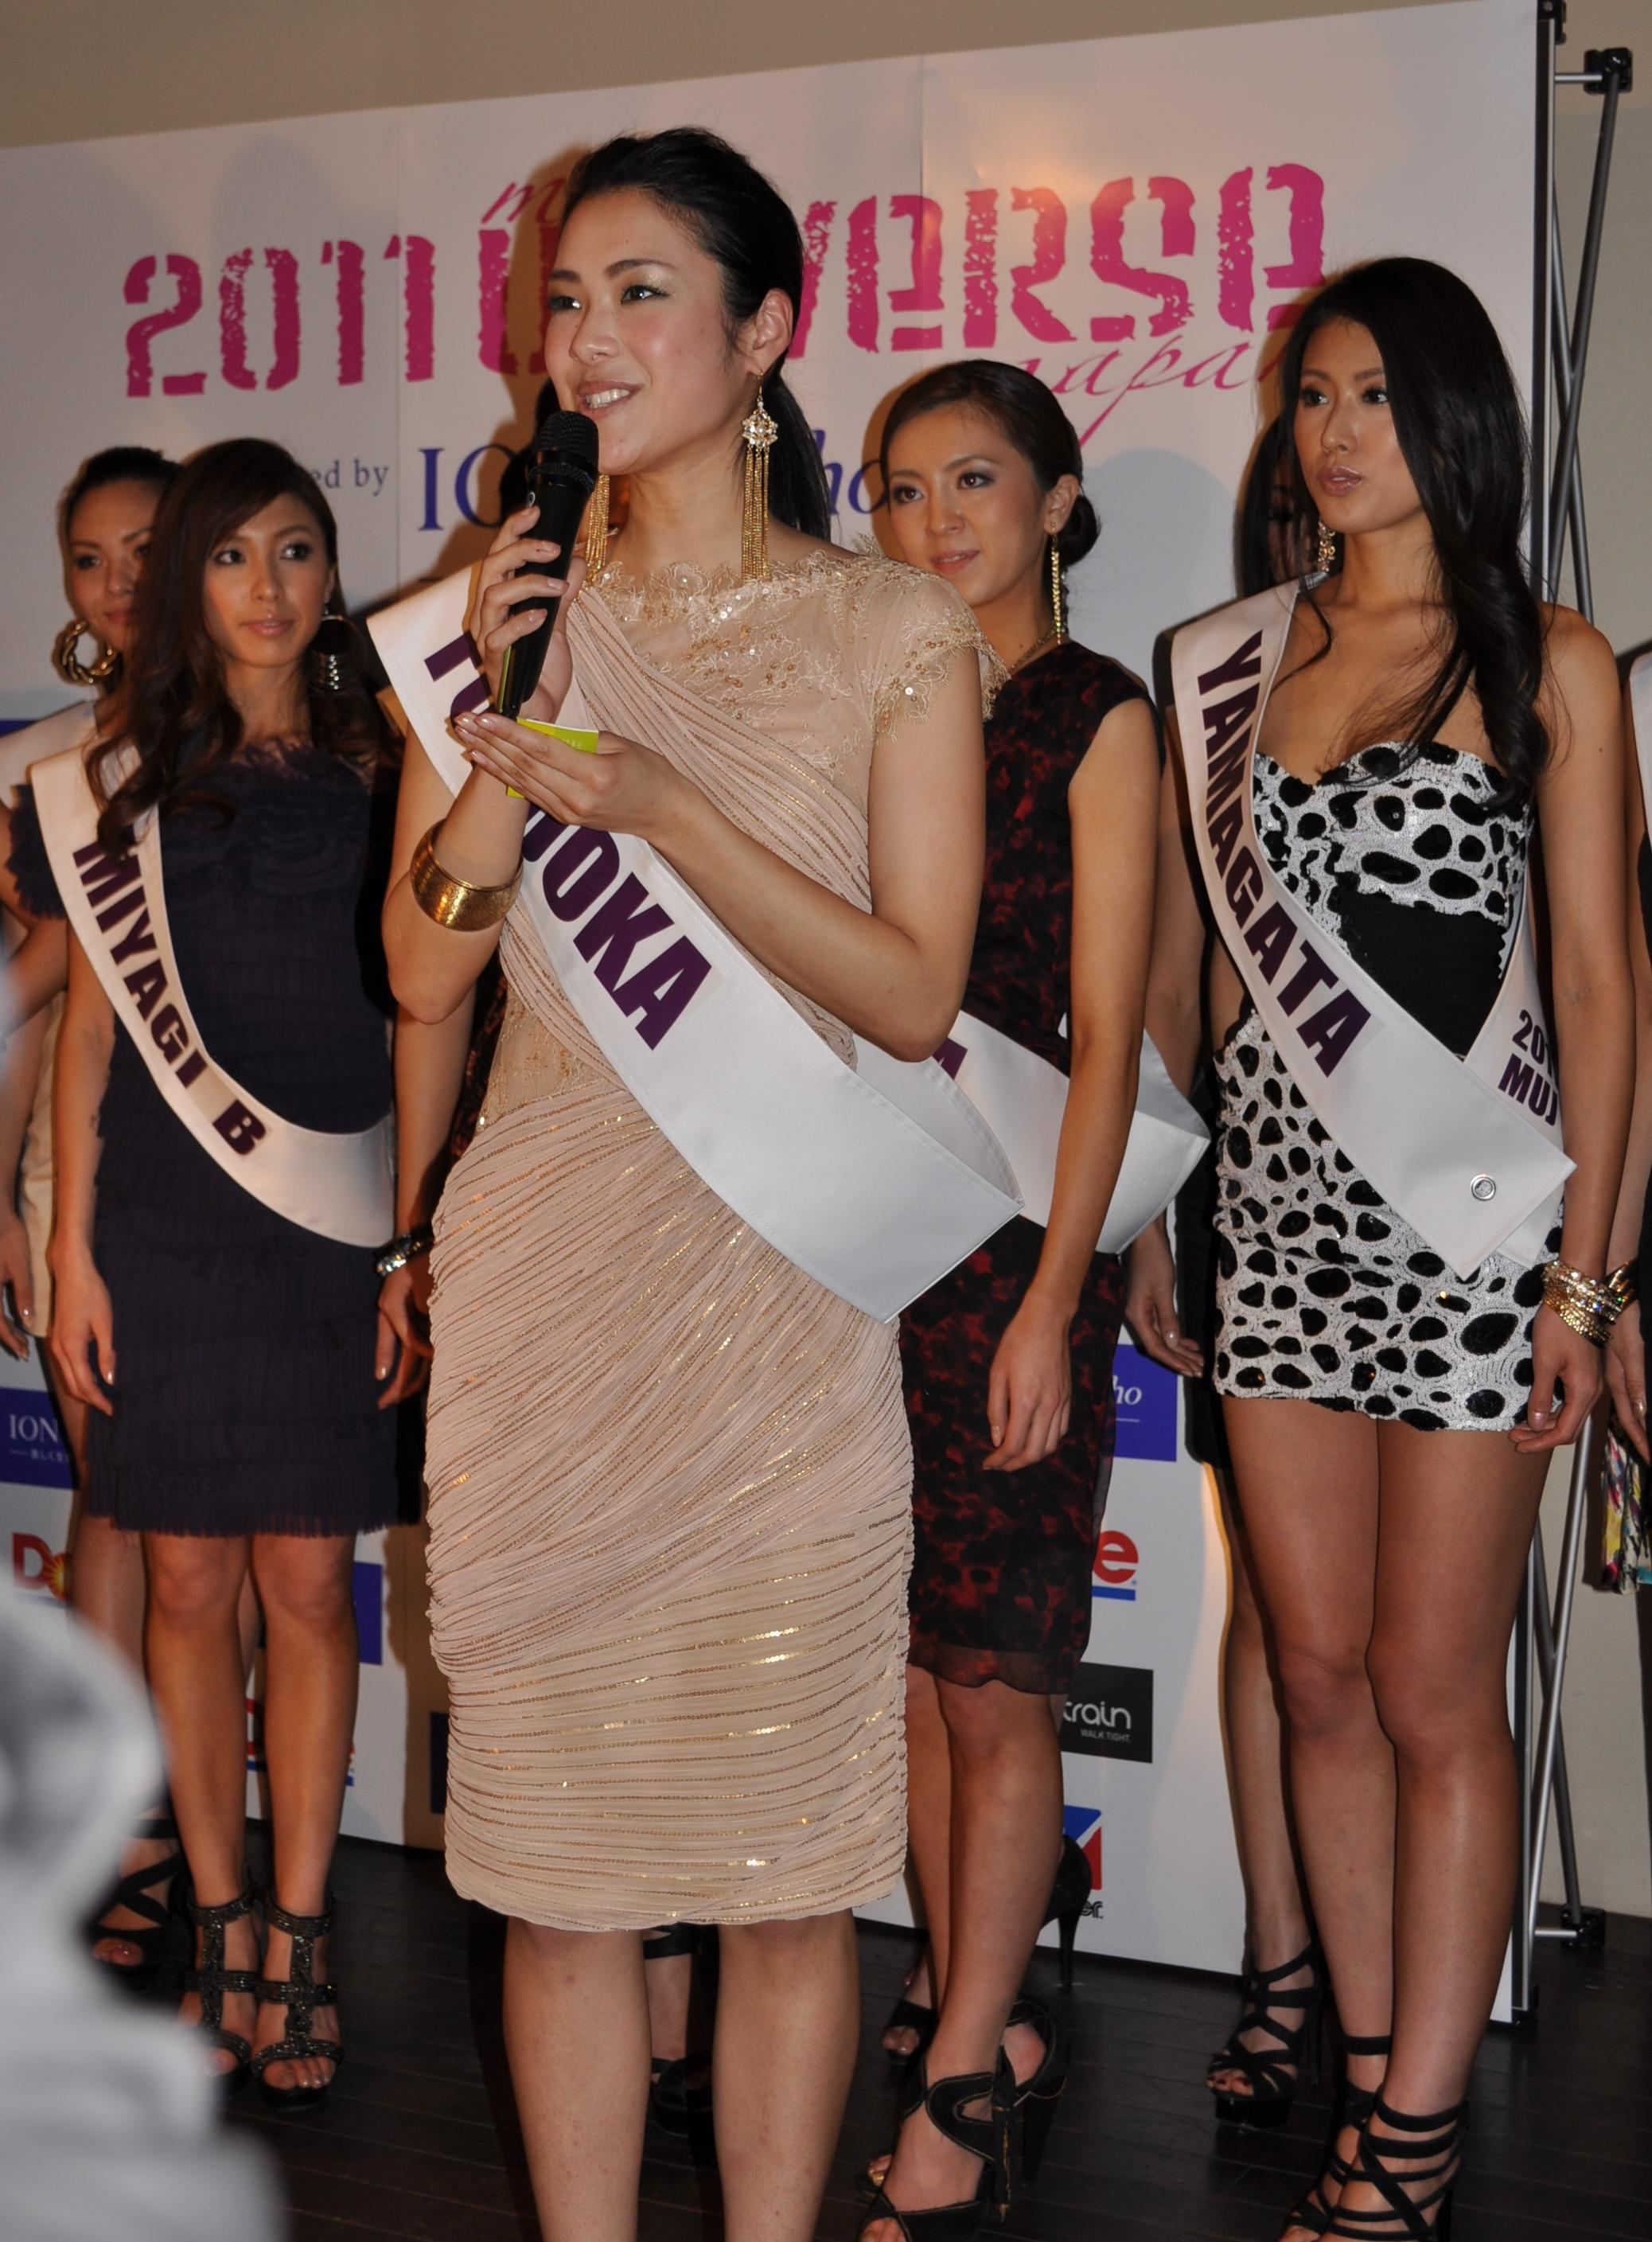 Road to Miss Universe Japan 2011 5591335610_d639d14c9e_o